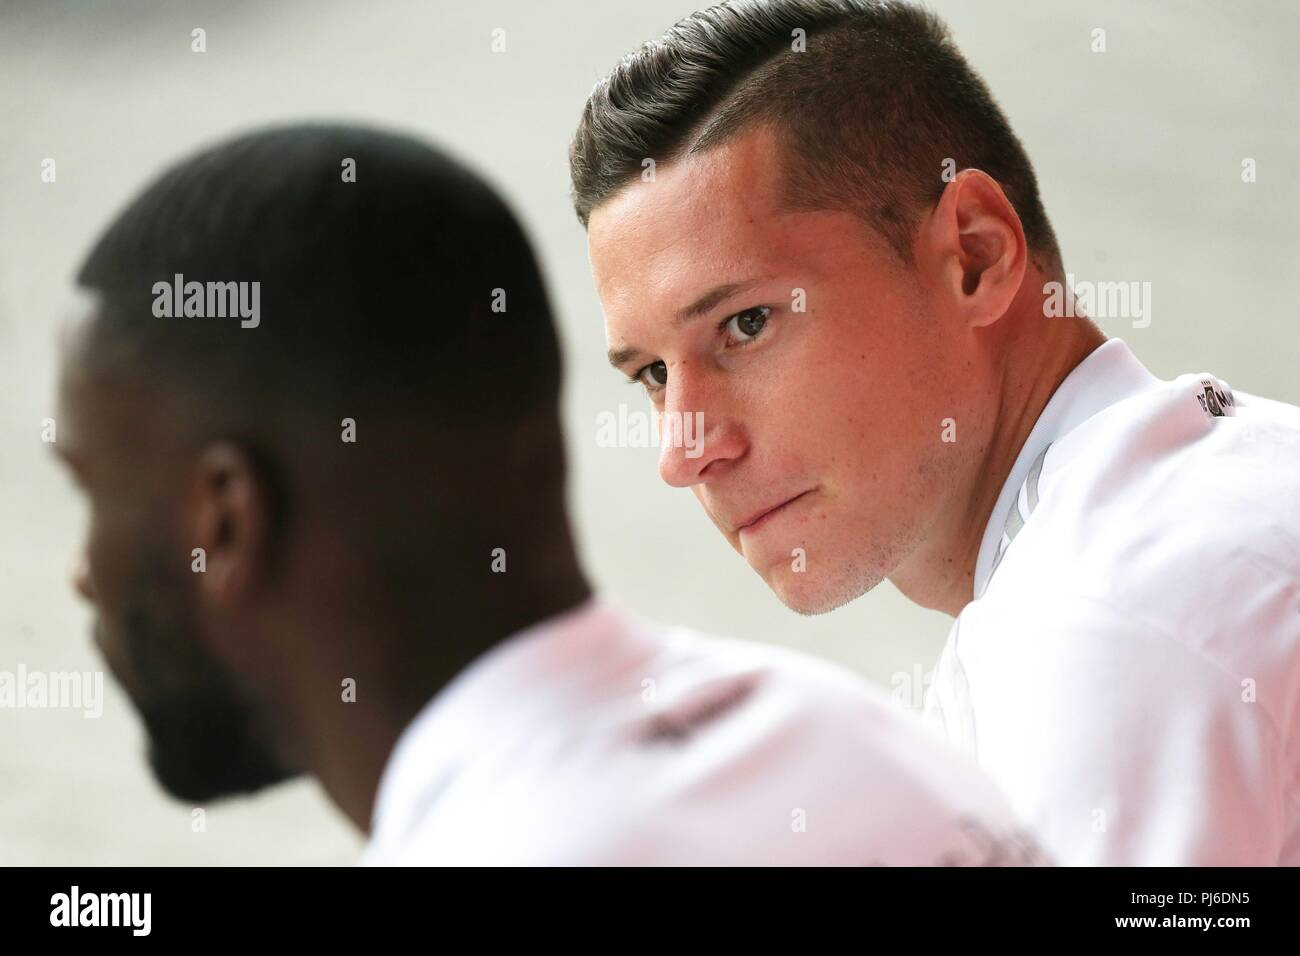 firo: 04.09.2018, Fuvuball, football, national team, training, Julian Draxler, DFB, half figure, Germany | usage worldwide - Stock Image